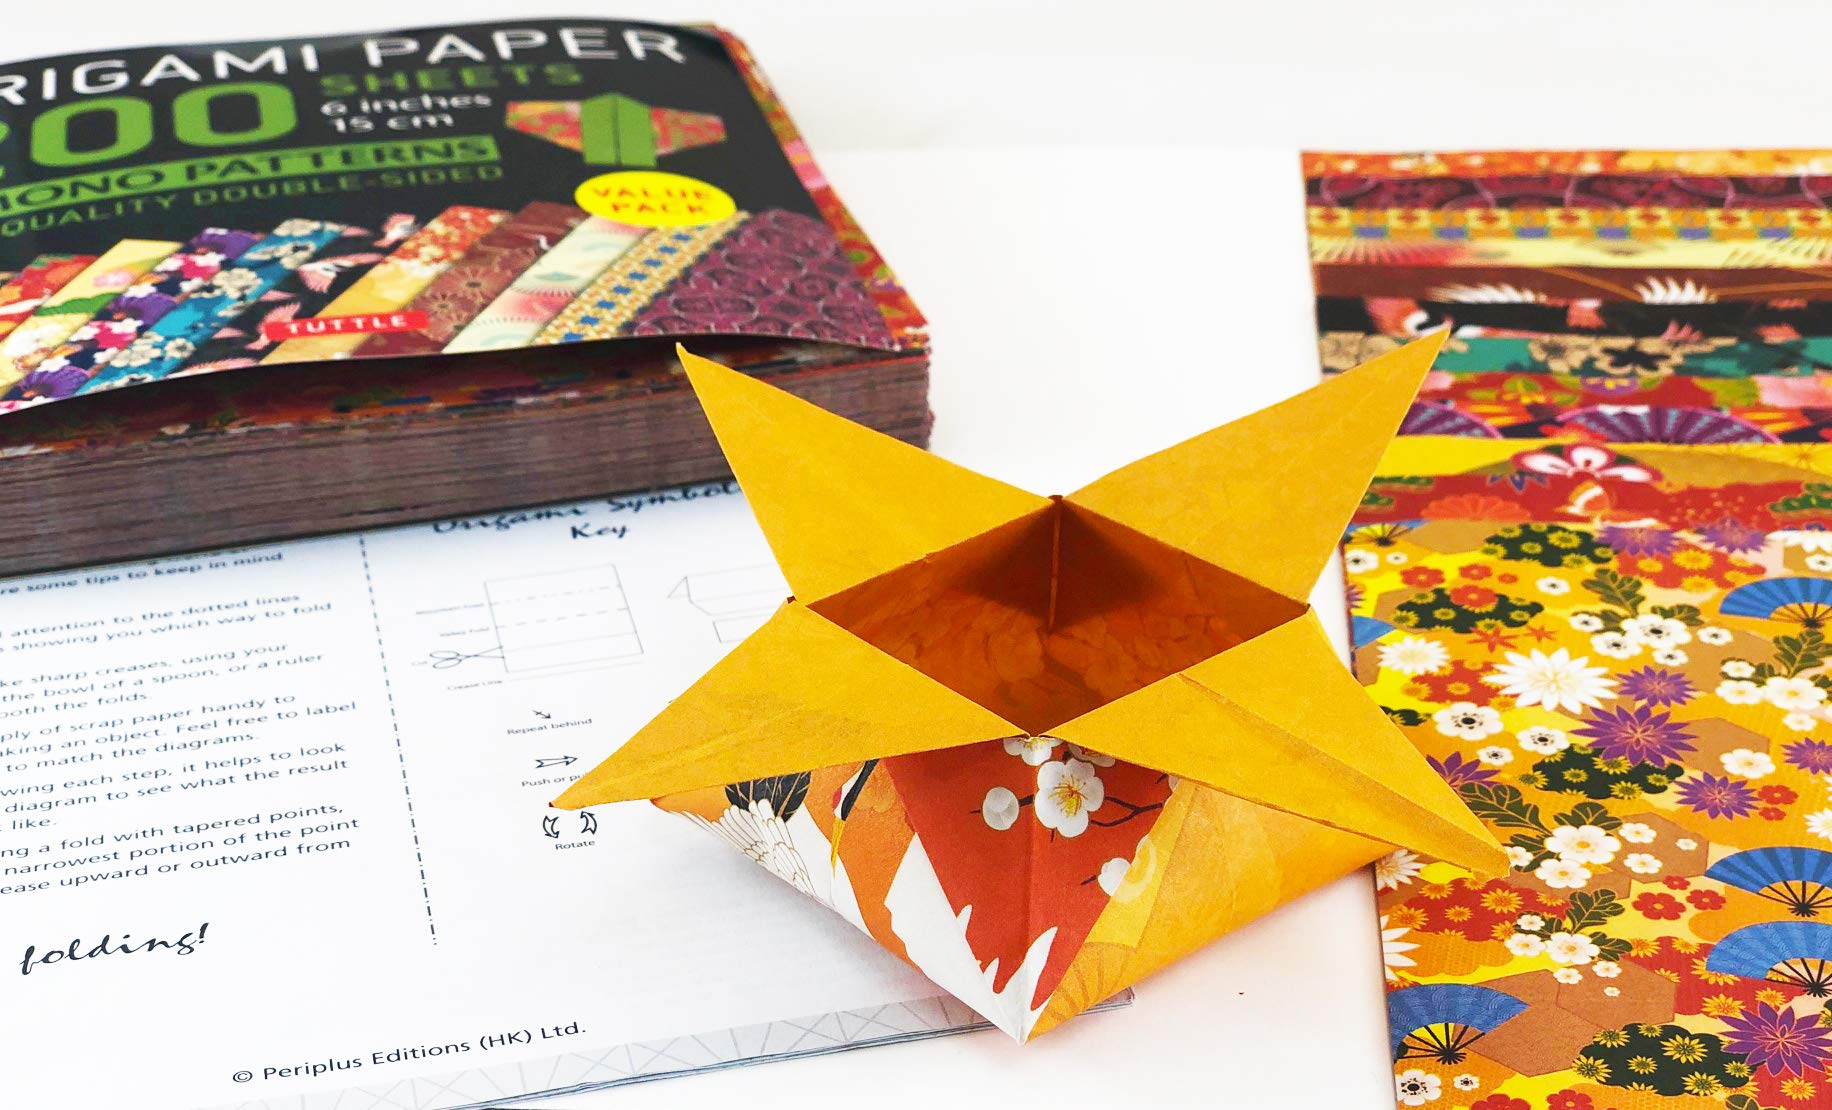 Origami Paper 200 sheets Kimono Patterns 6 15 cm : Tuttle Origami Paper: High-Quality Double-Sided Origami Sheets Printed with 12 Patterns ... Included Origami Paper Pack 6 Inch: Amazon.es: Publishing, Tuttle: Libros en idiomas extranjeros